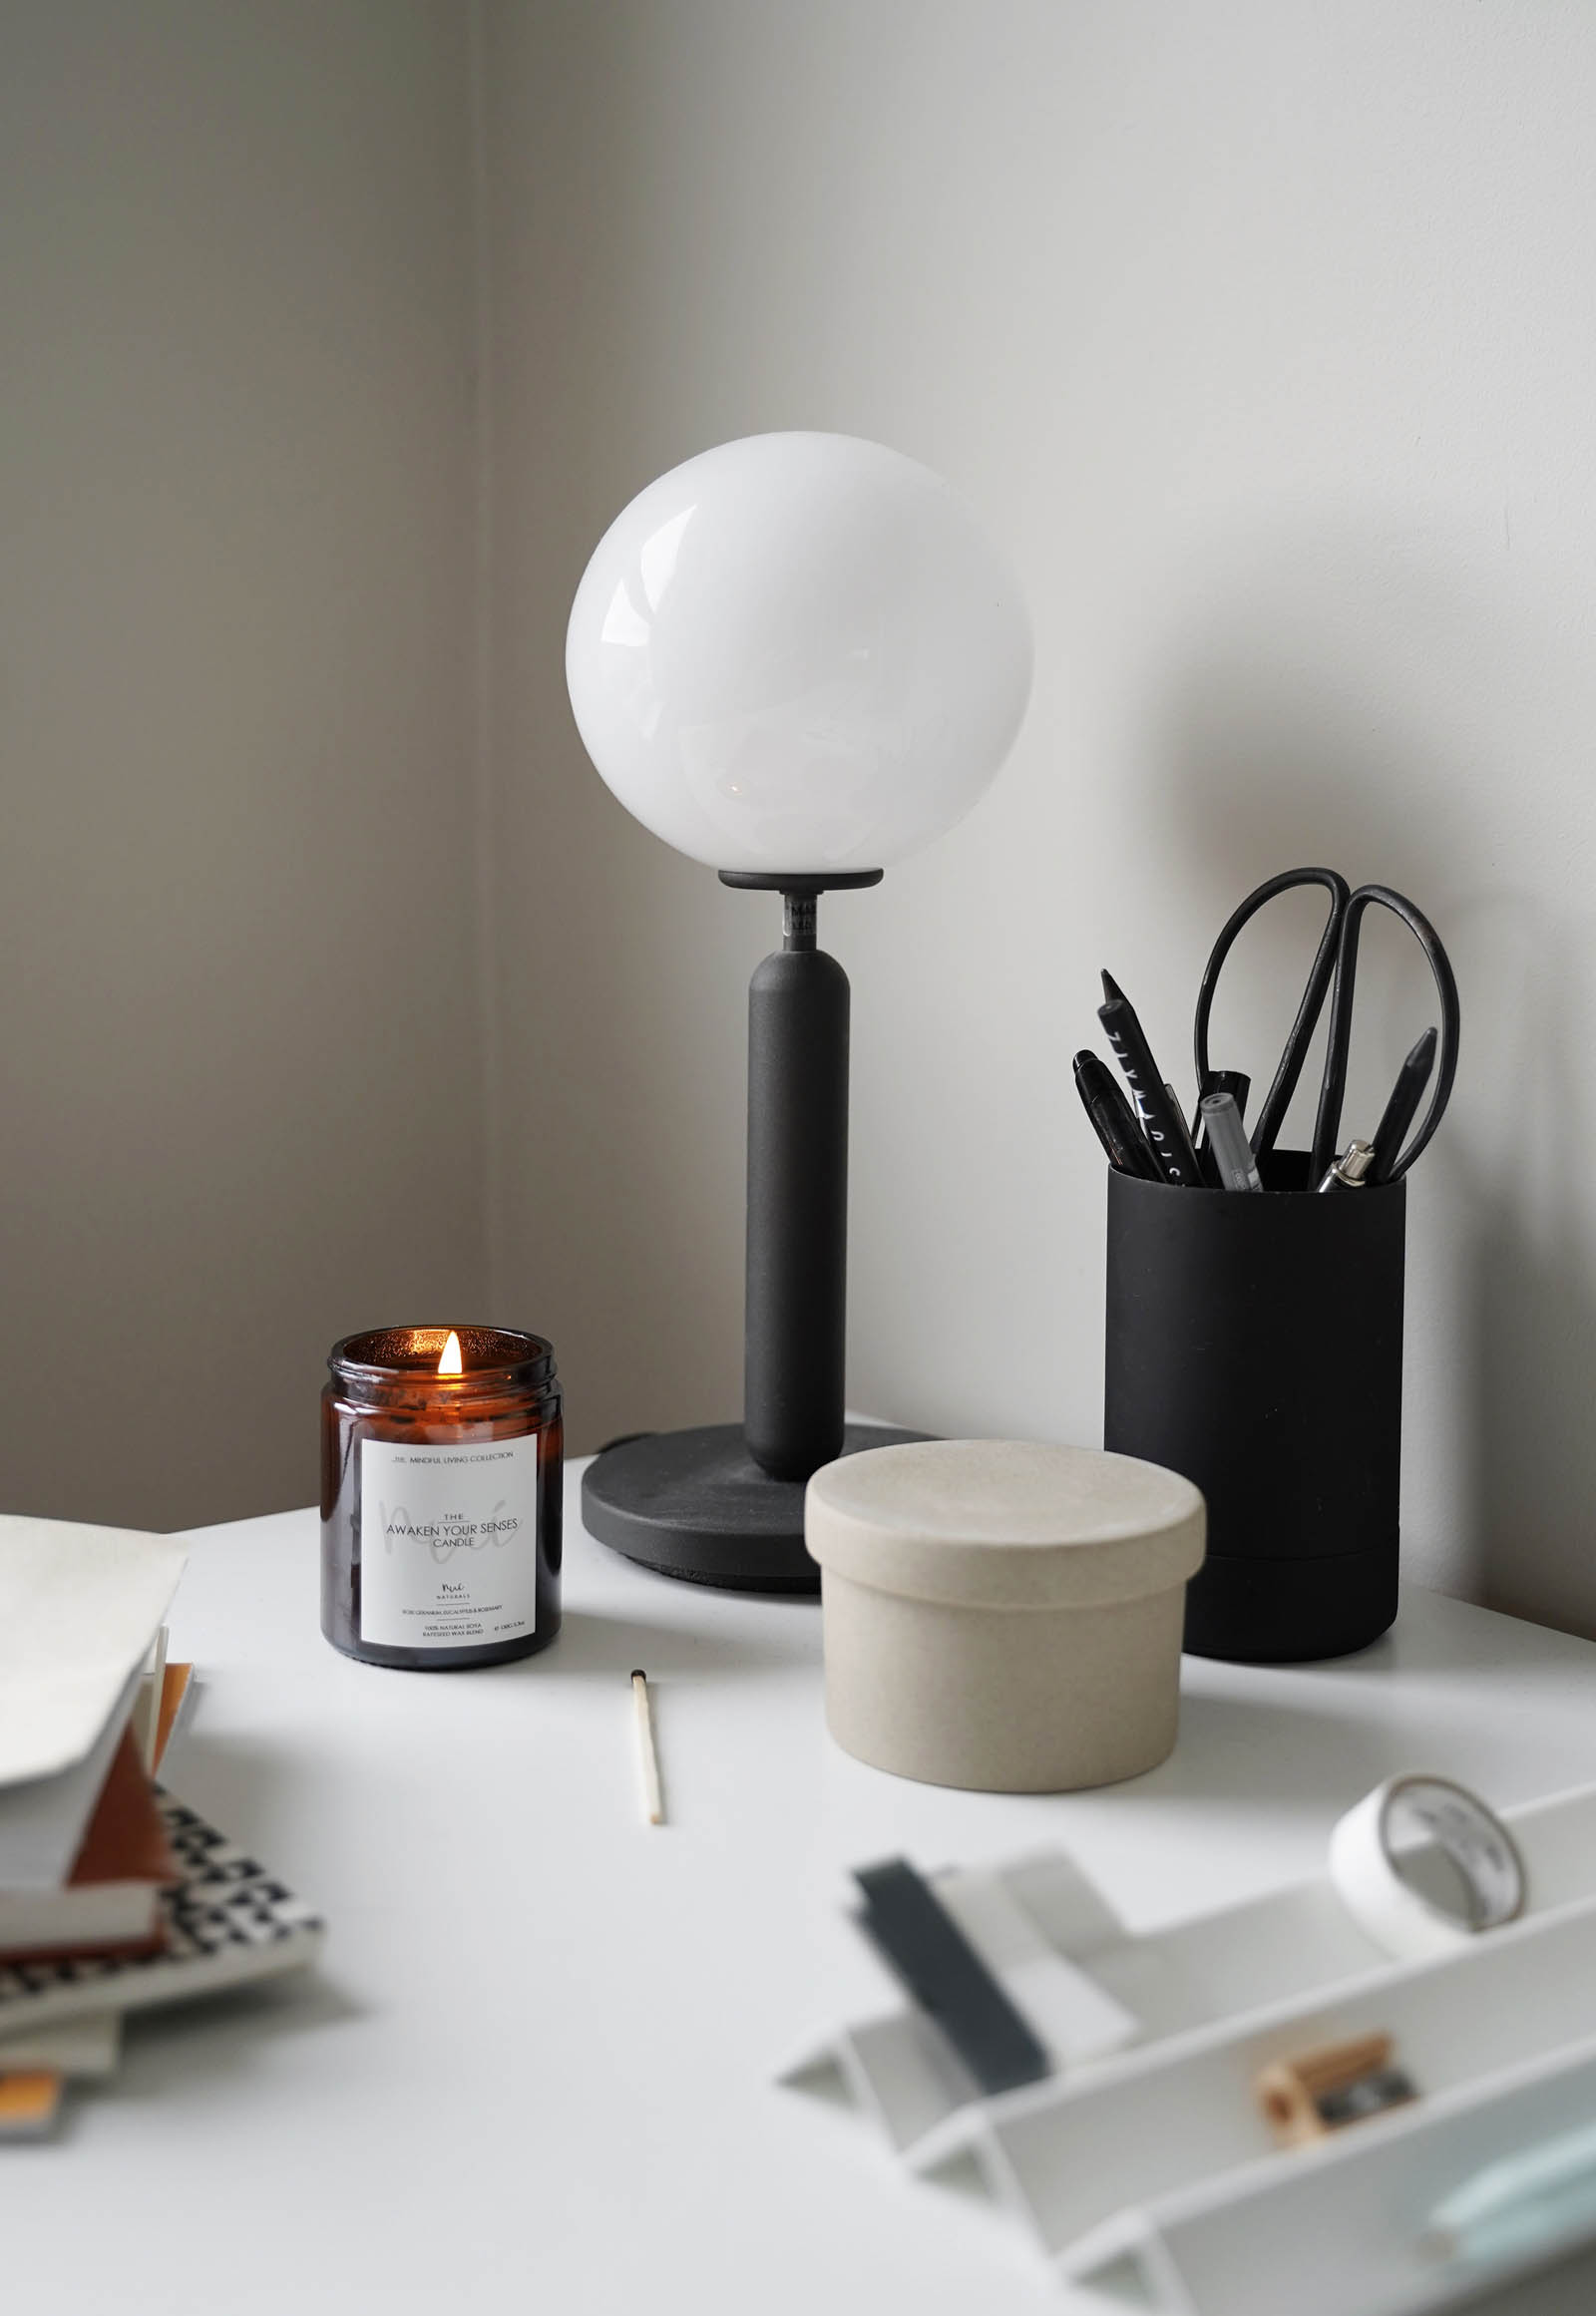 Minimalist desk organisation and contemporary black table lamp in a calming grey home office | These Four Walls blog